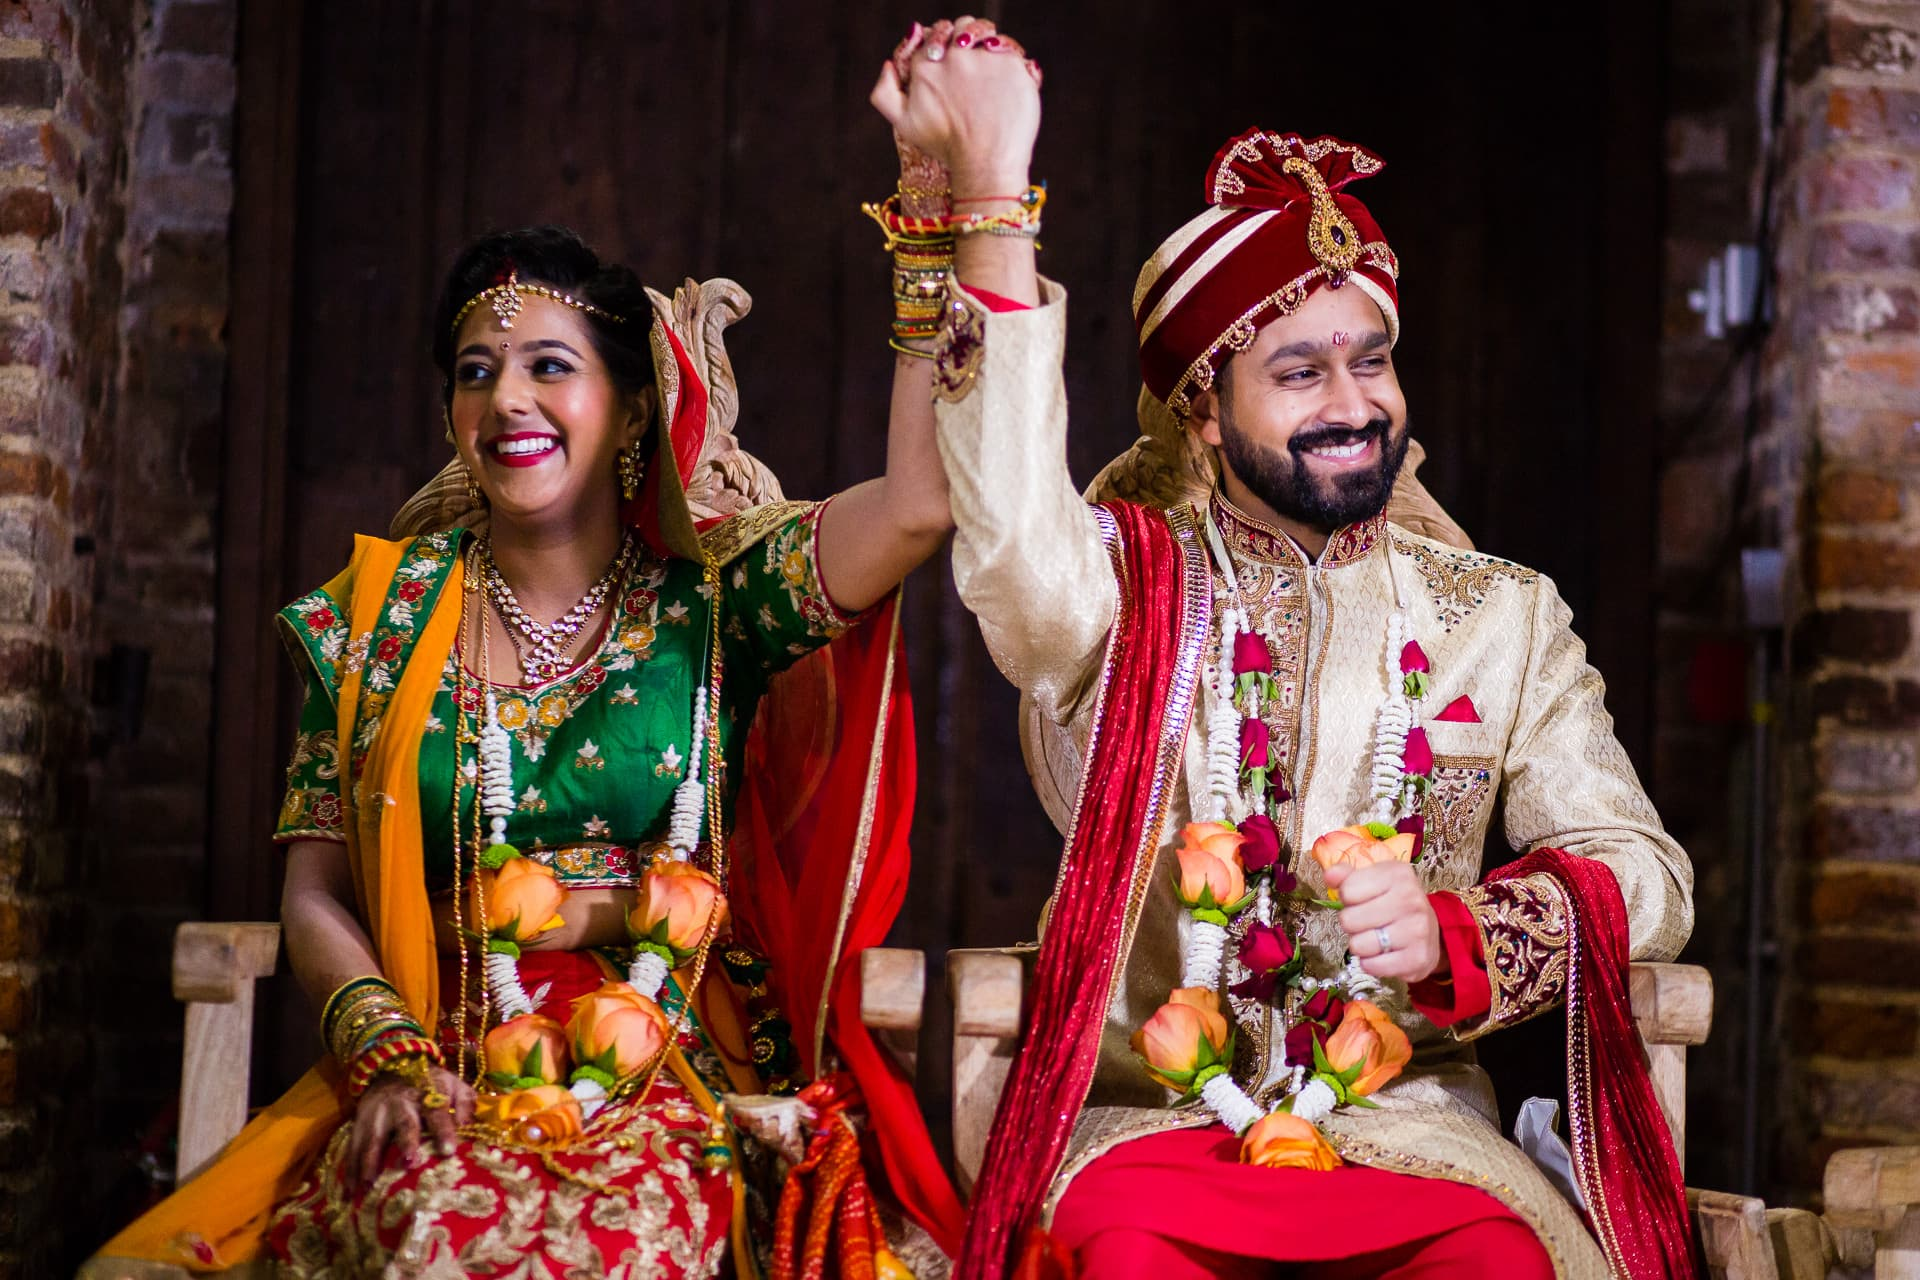 Alpa and Rahul's Wedding at Hatfield House